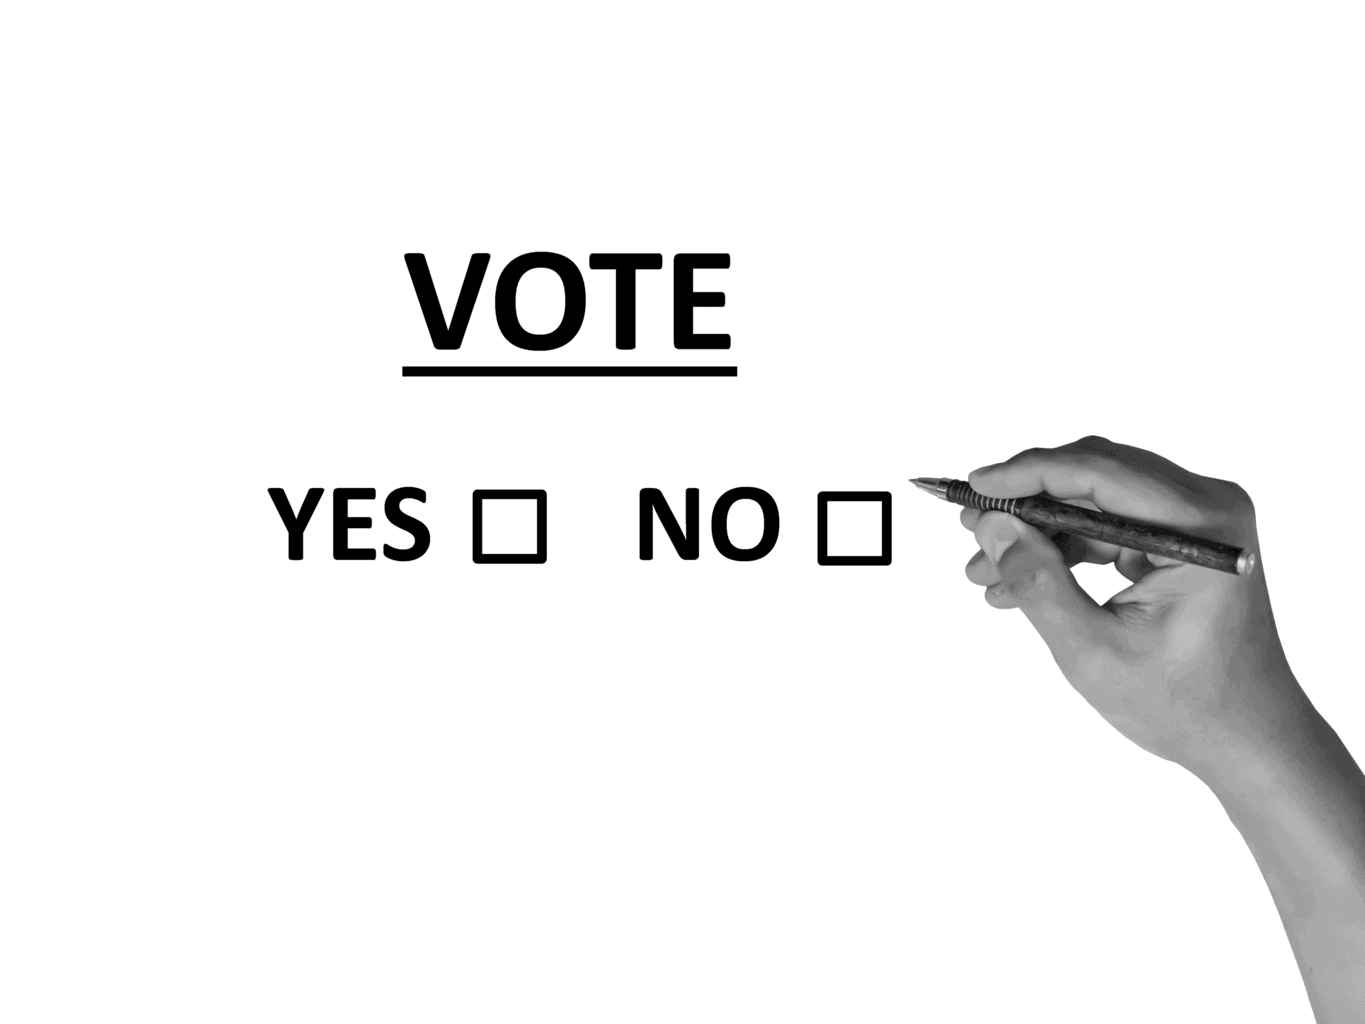 vote, poll, election